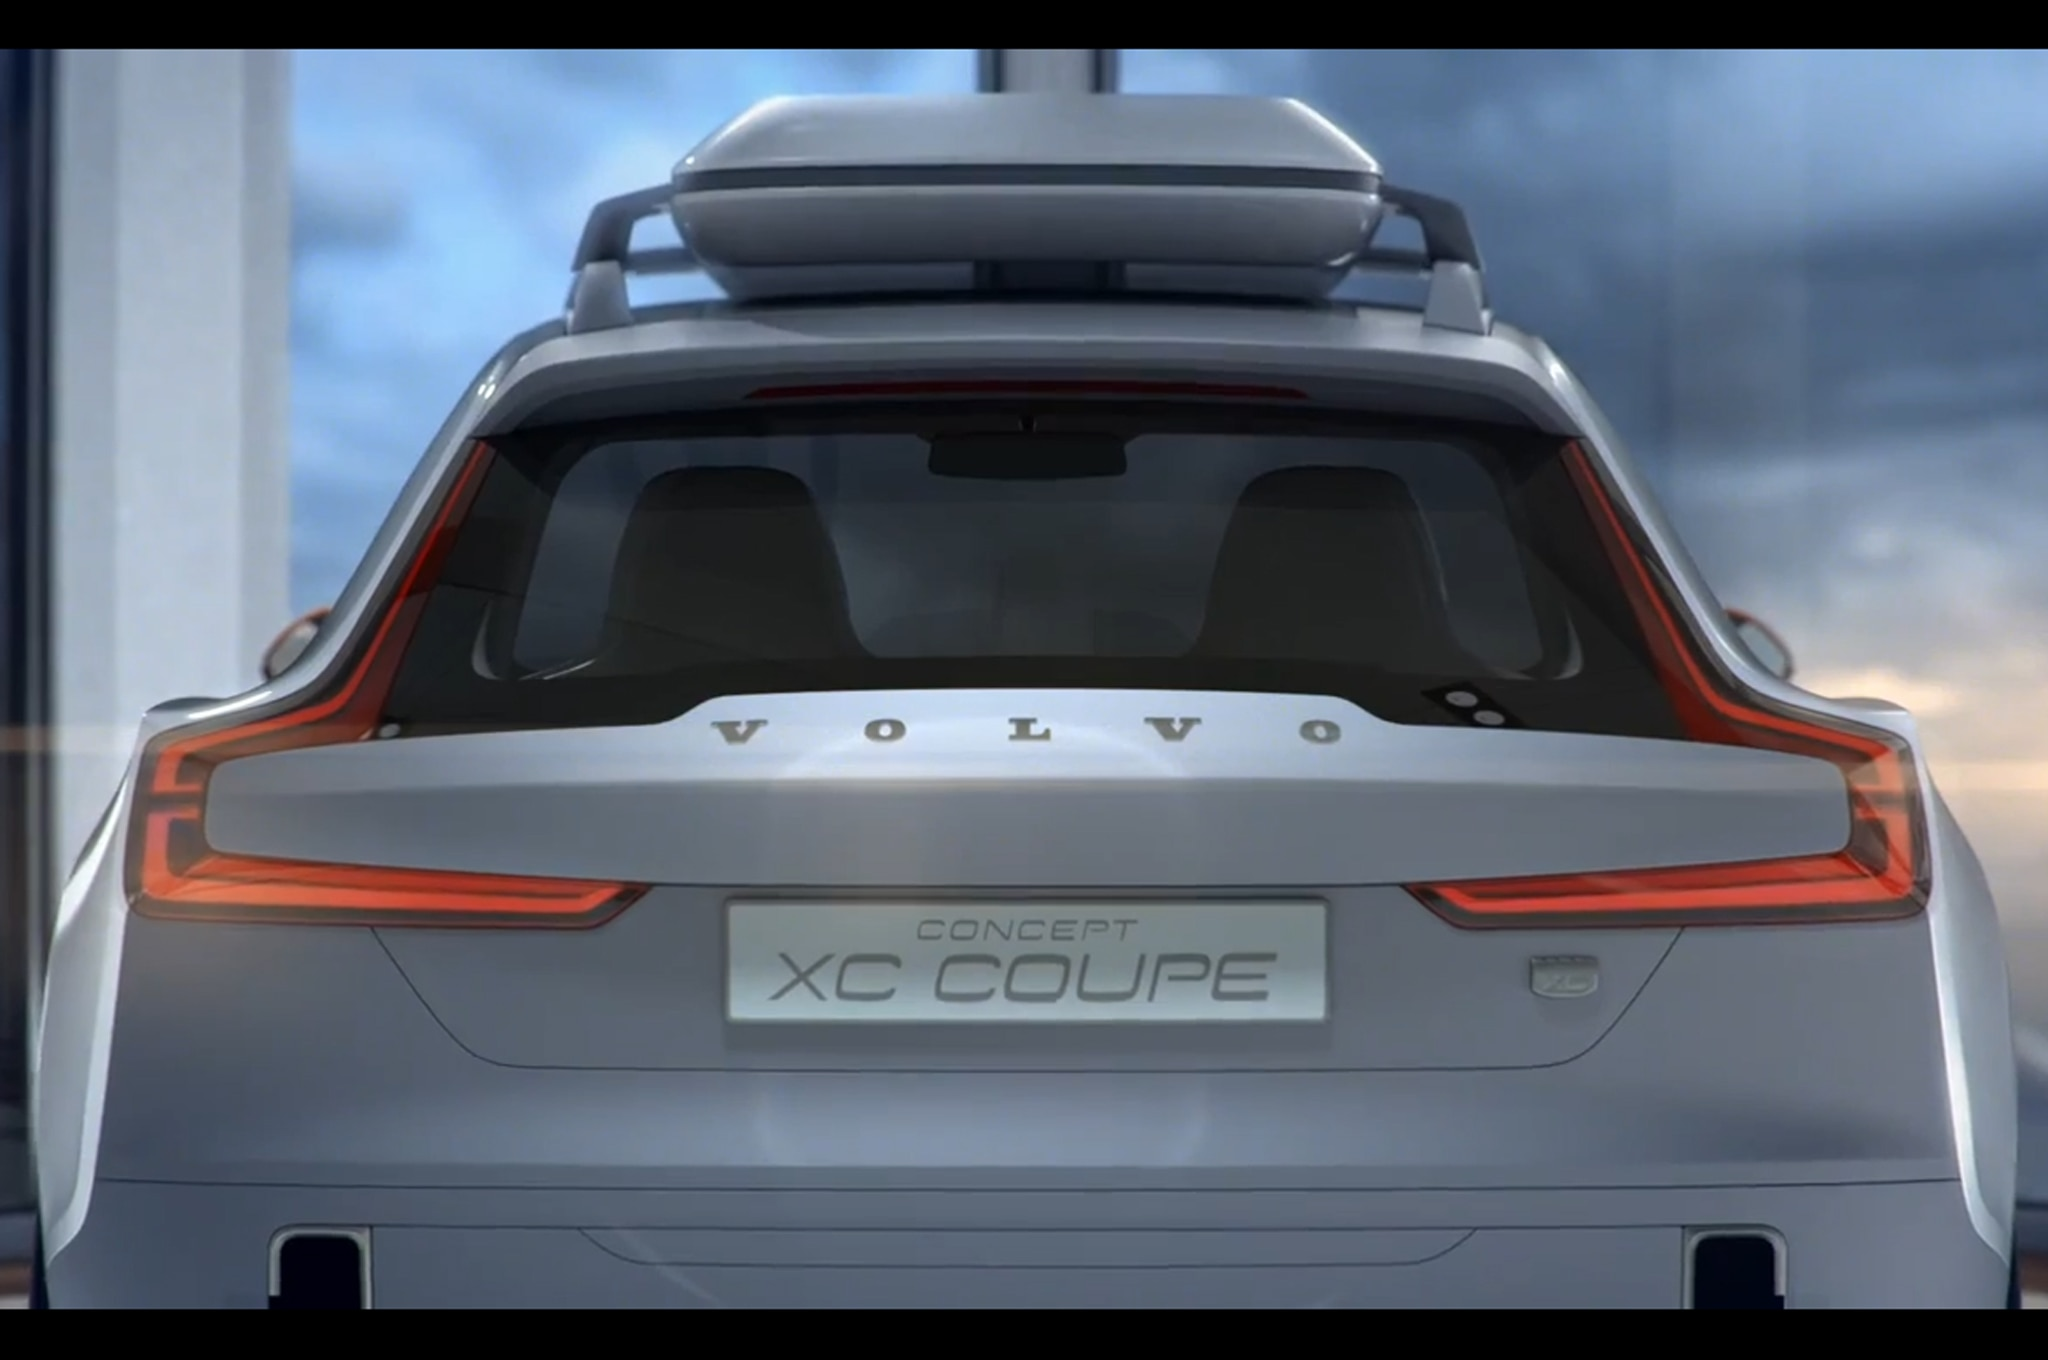 Volvo Concept Xc Coupe To Debut At 2014 Detroit Auto Show